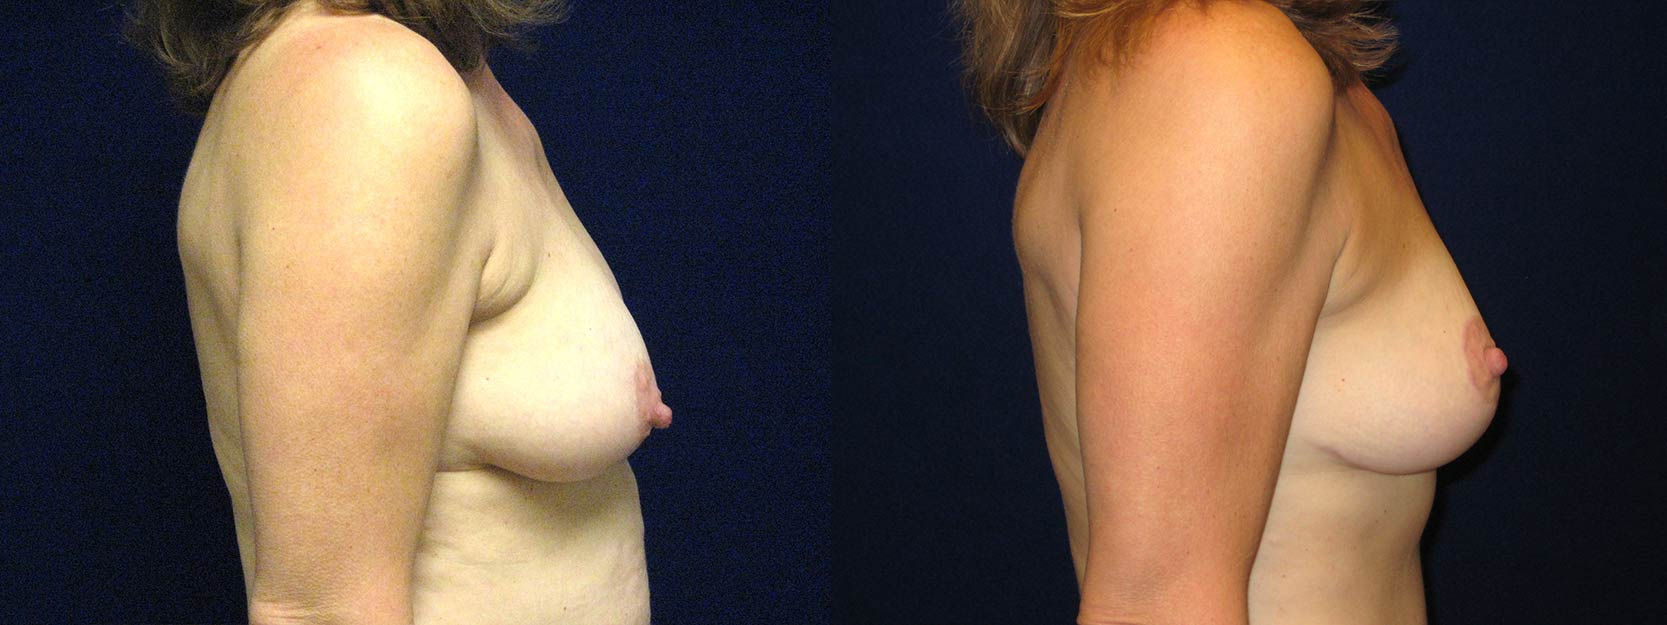 Right Profile View - Breast Lift After Pregnancy